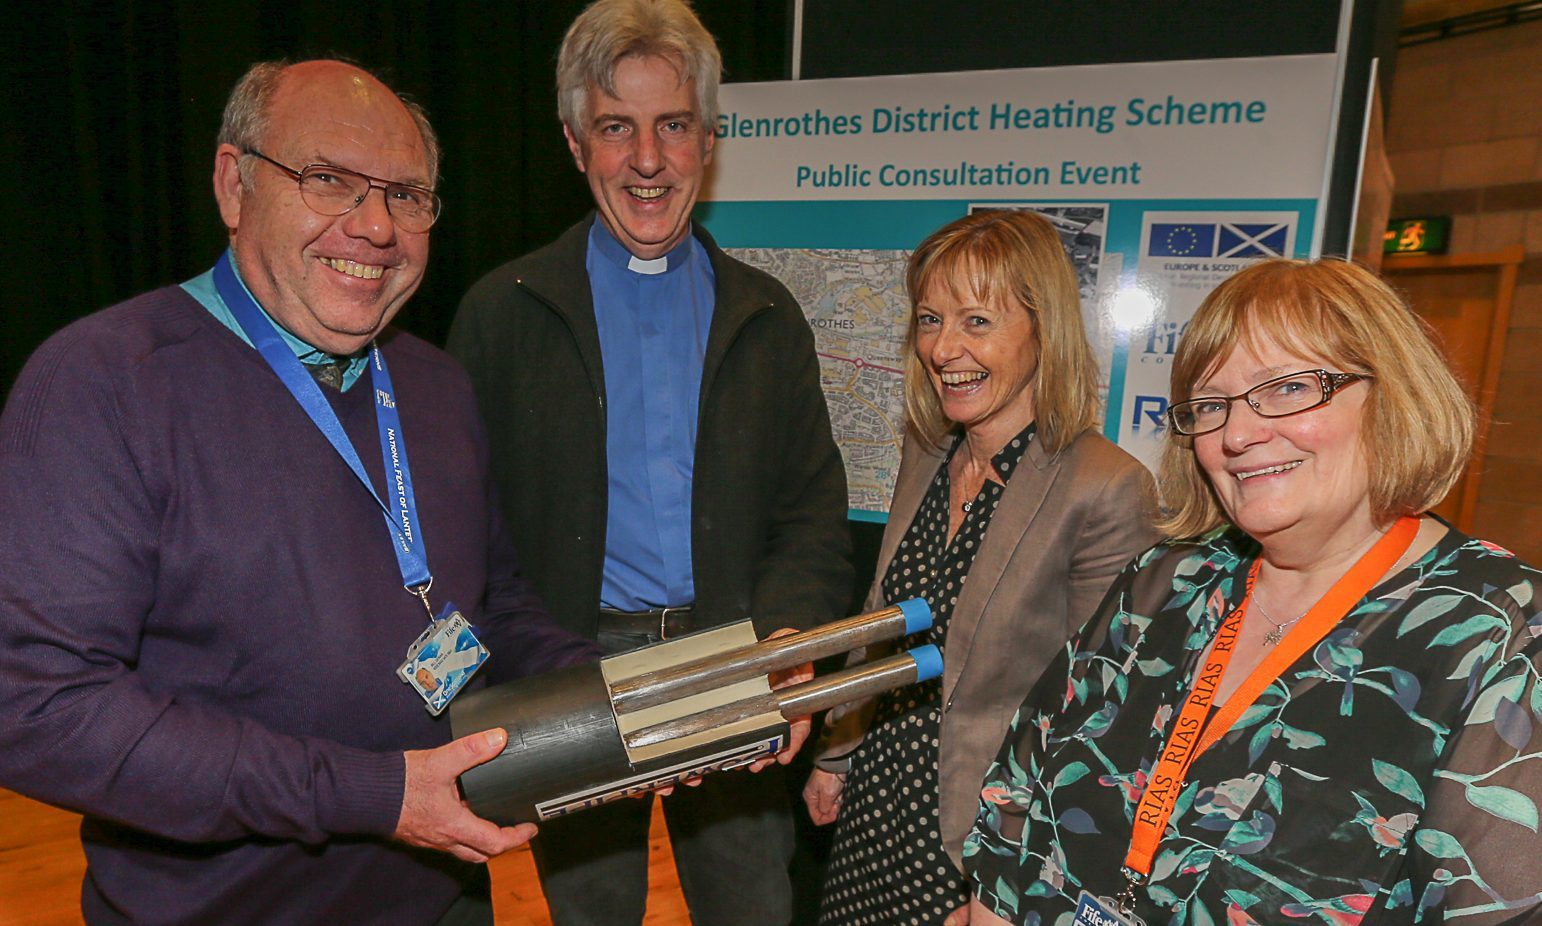 Pictured at one of the recent consultation events were Bill Dewar, Fife Council lead professional, Rev Alan Kimmitt, Barbara Whiting, Fife Council lead professional, and Martha McLachlan, Fife Council energy promotion and development officer.